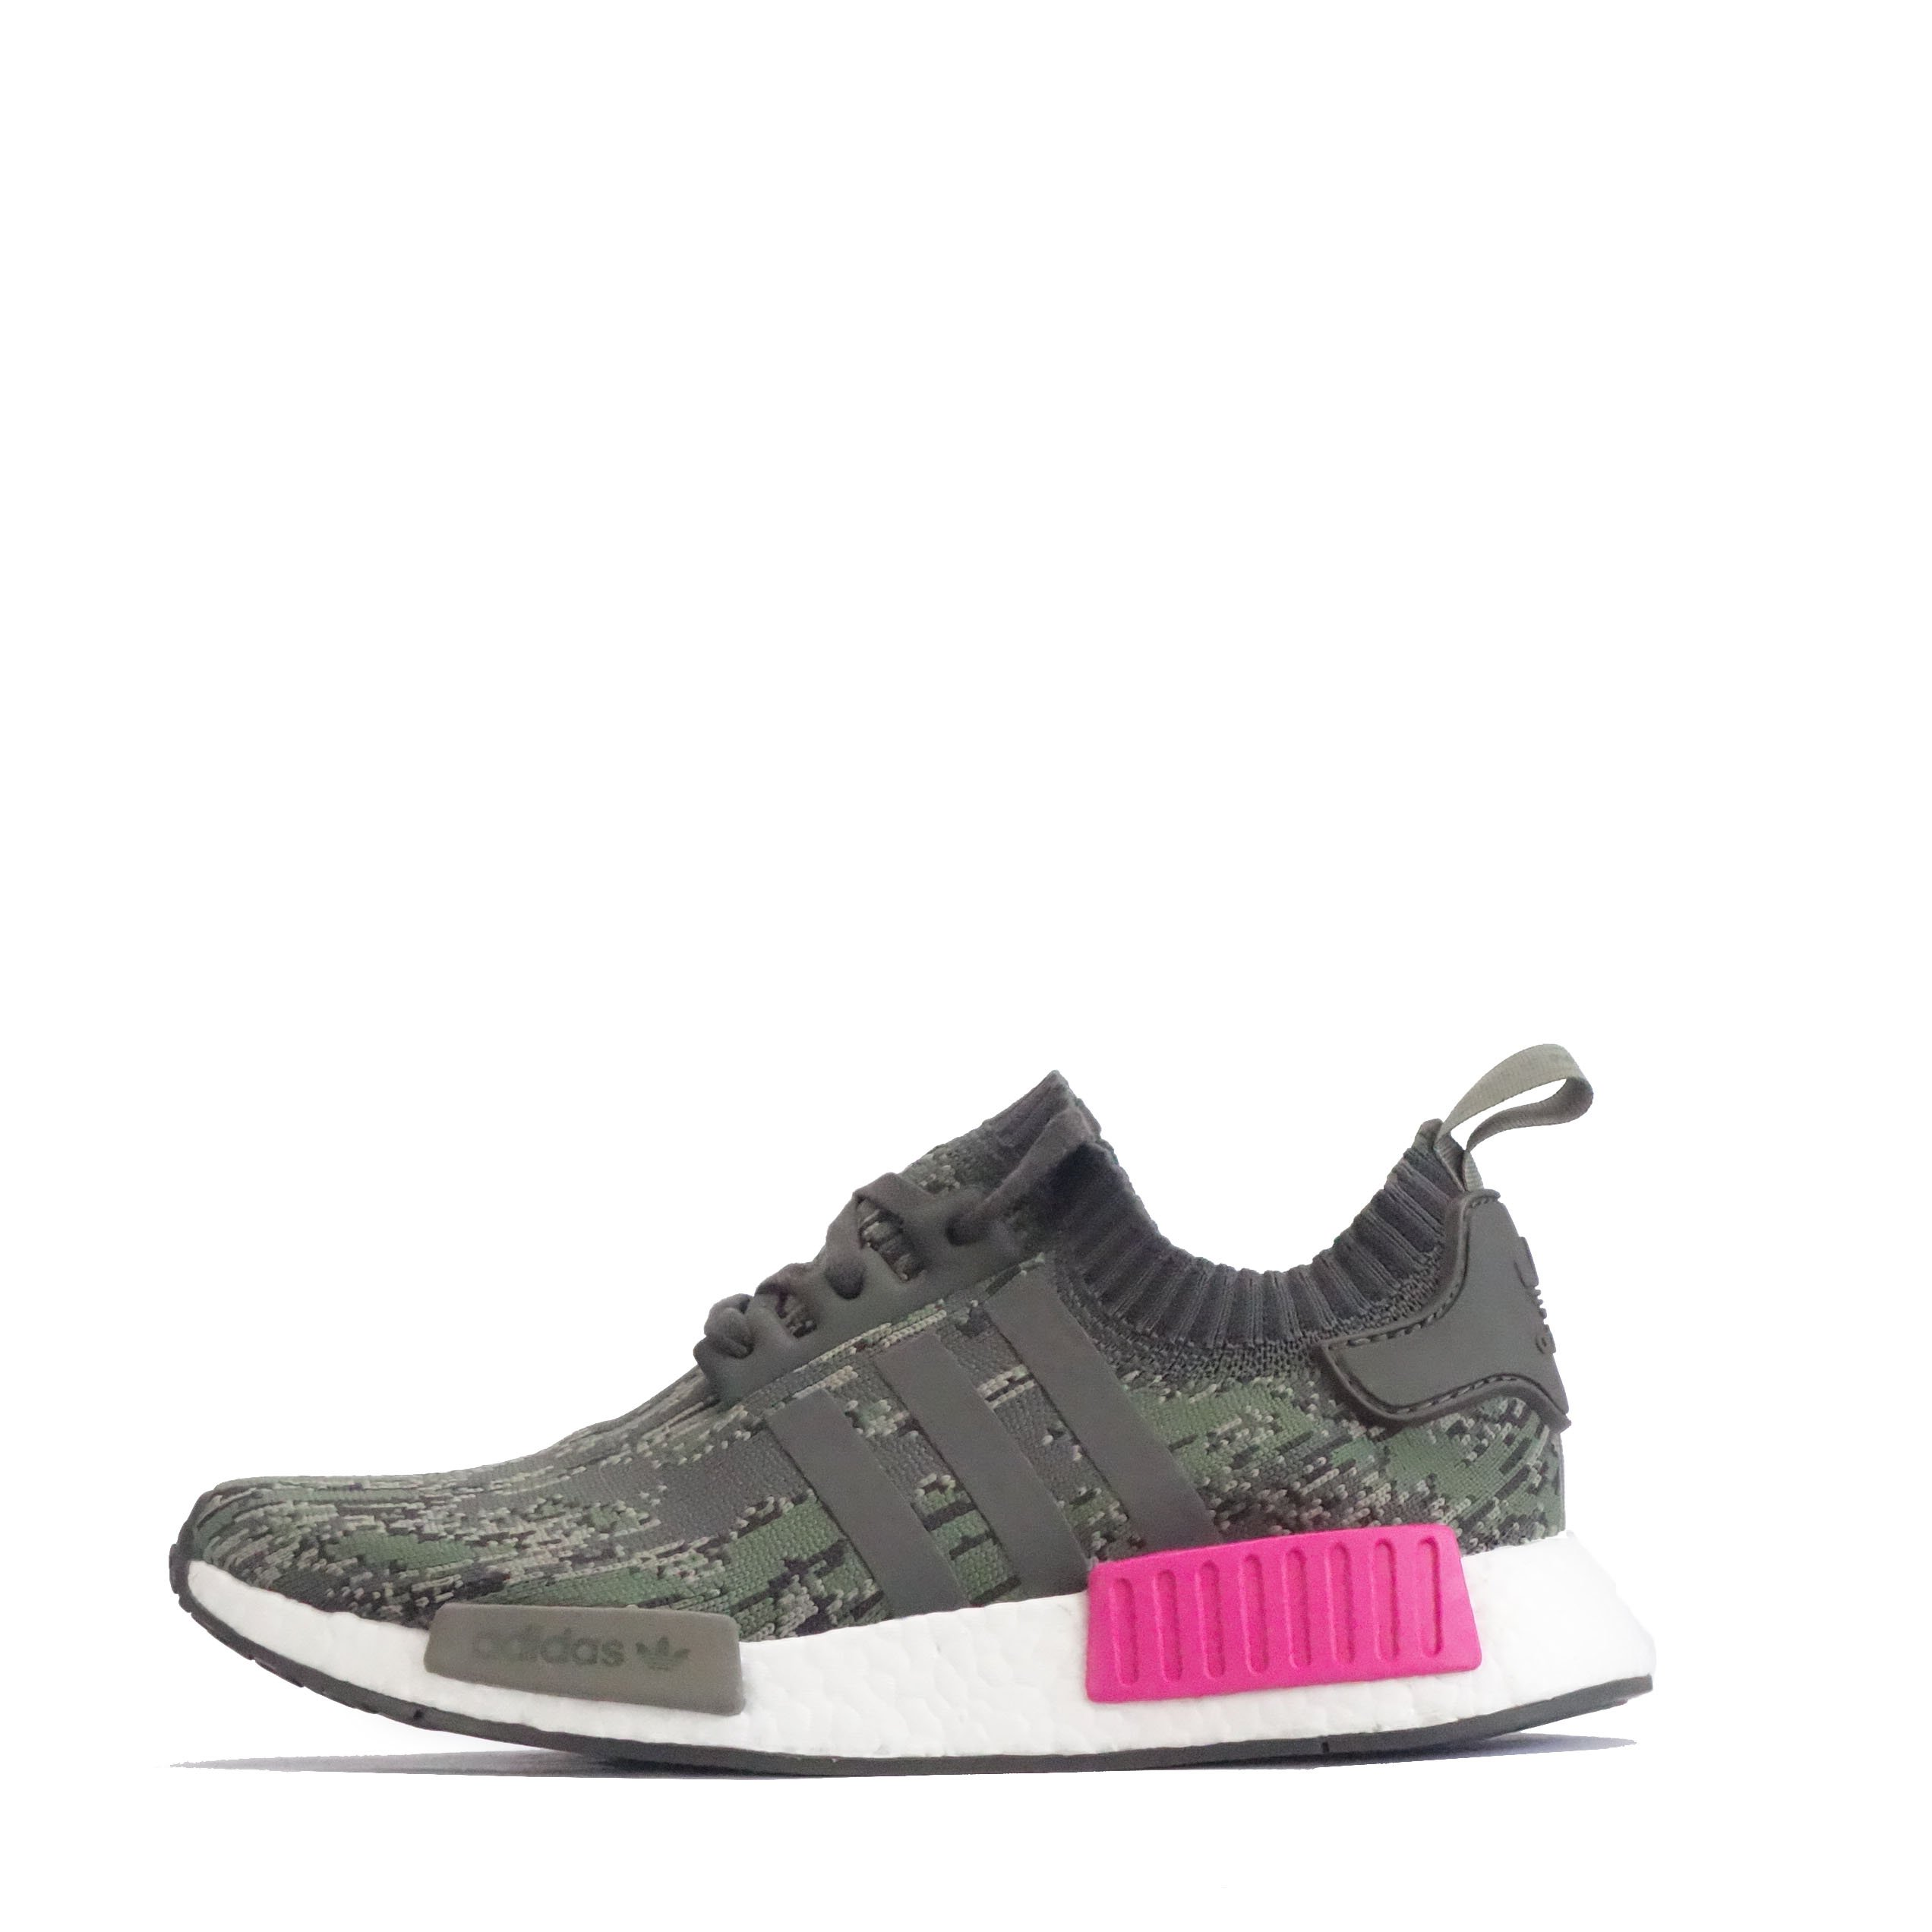 e5f256f29a8a2 Galleon - Adidas Originals NMD R1 Pk Mens Running Trainers Sneakers Shoes  Prime Knit (UK 7 US 7.5 EU 40 2 3